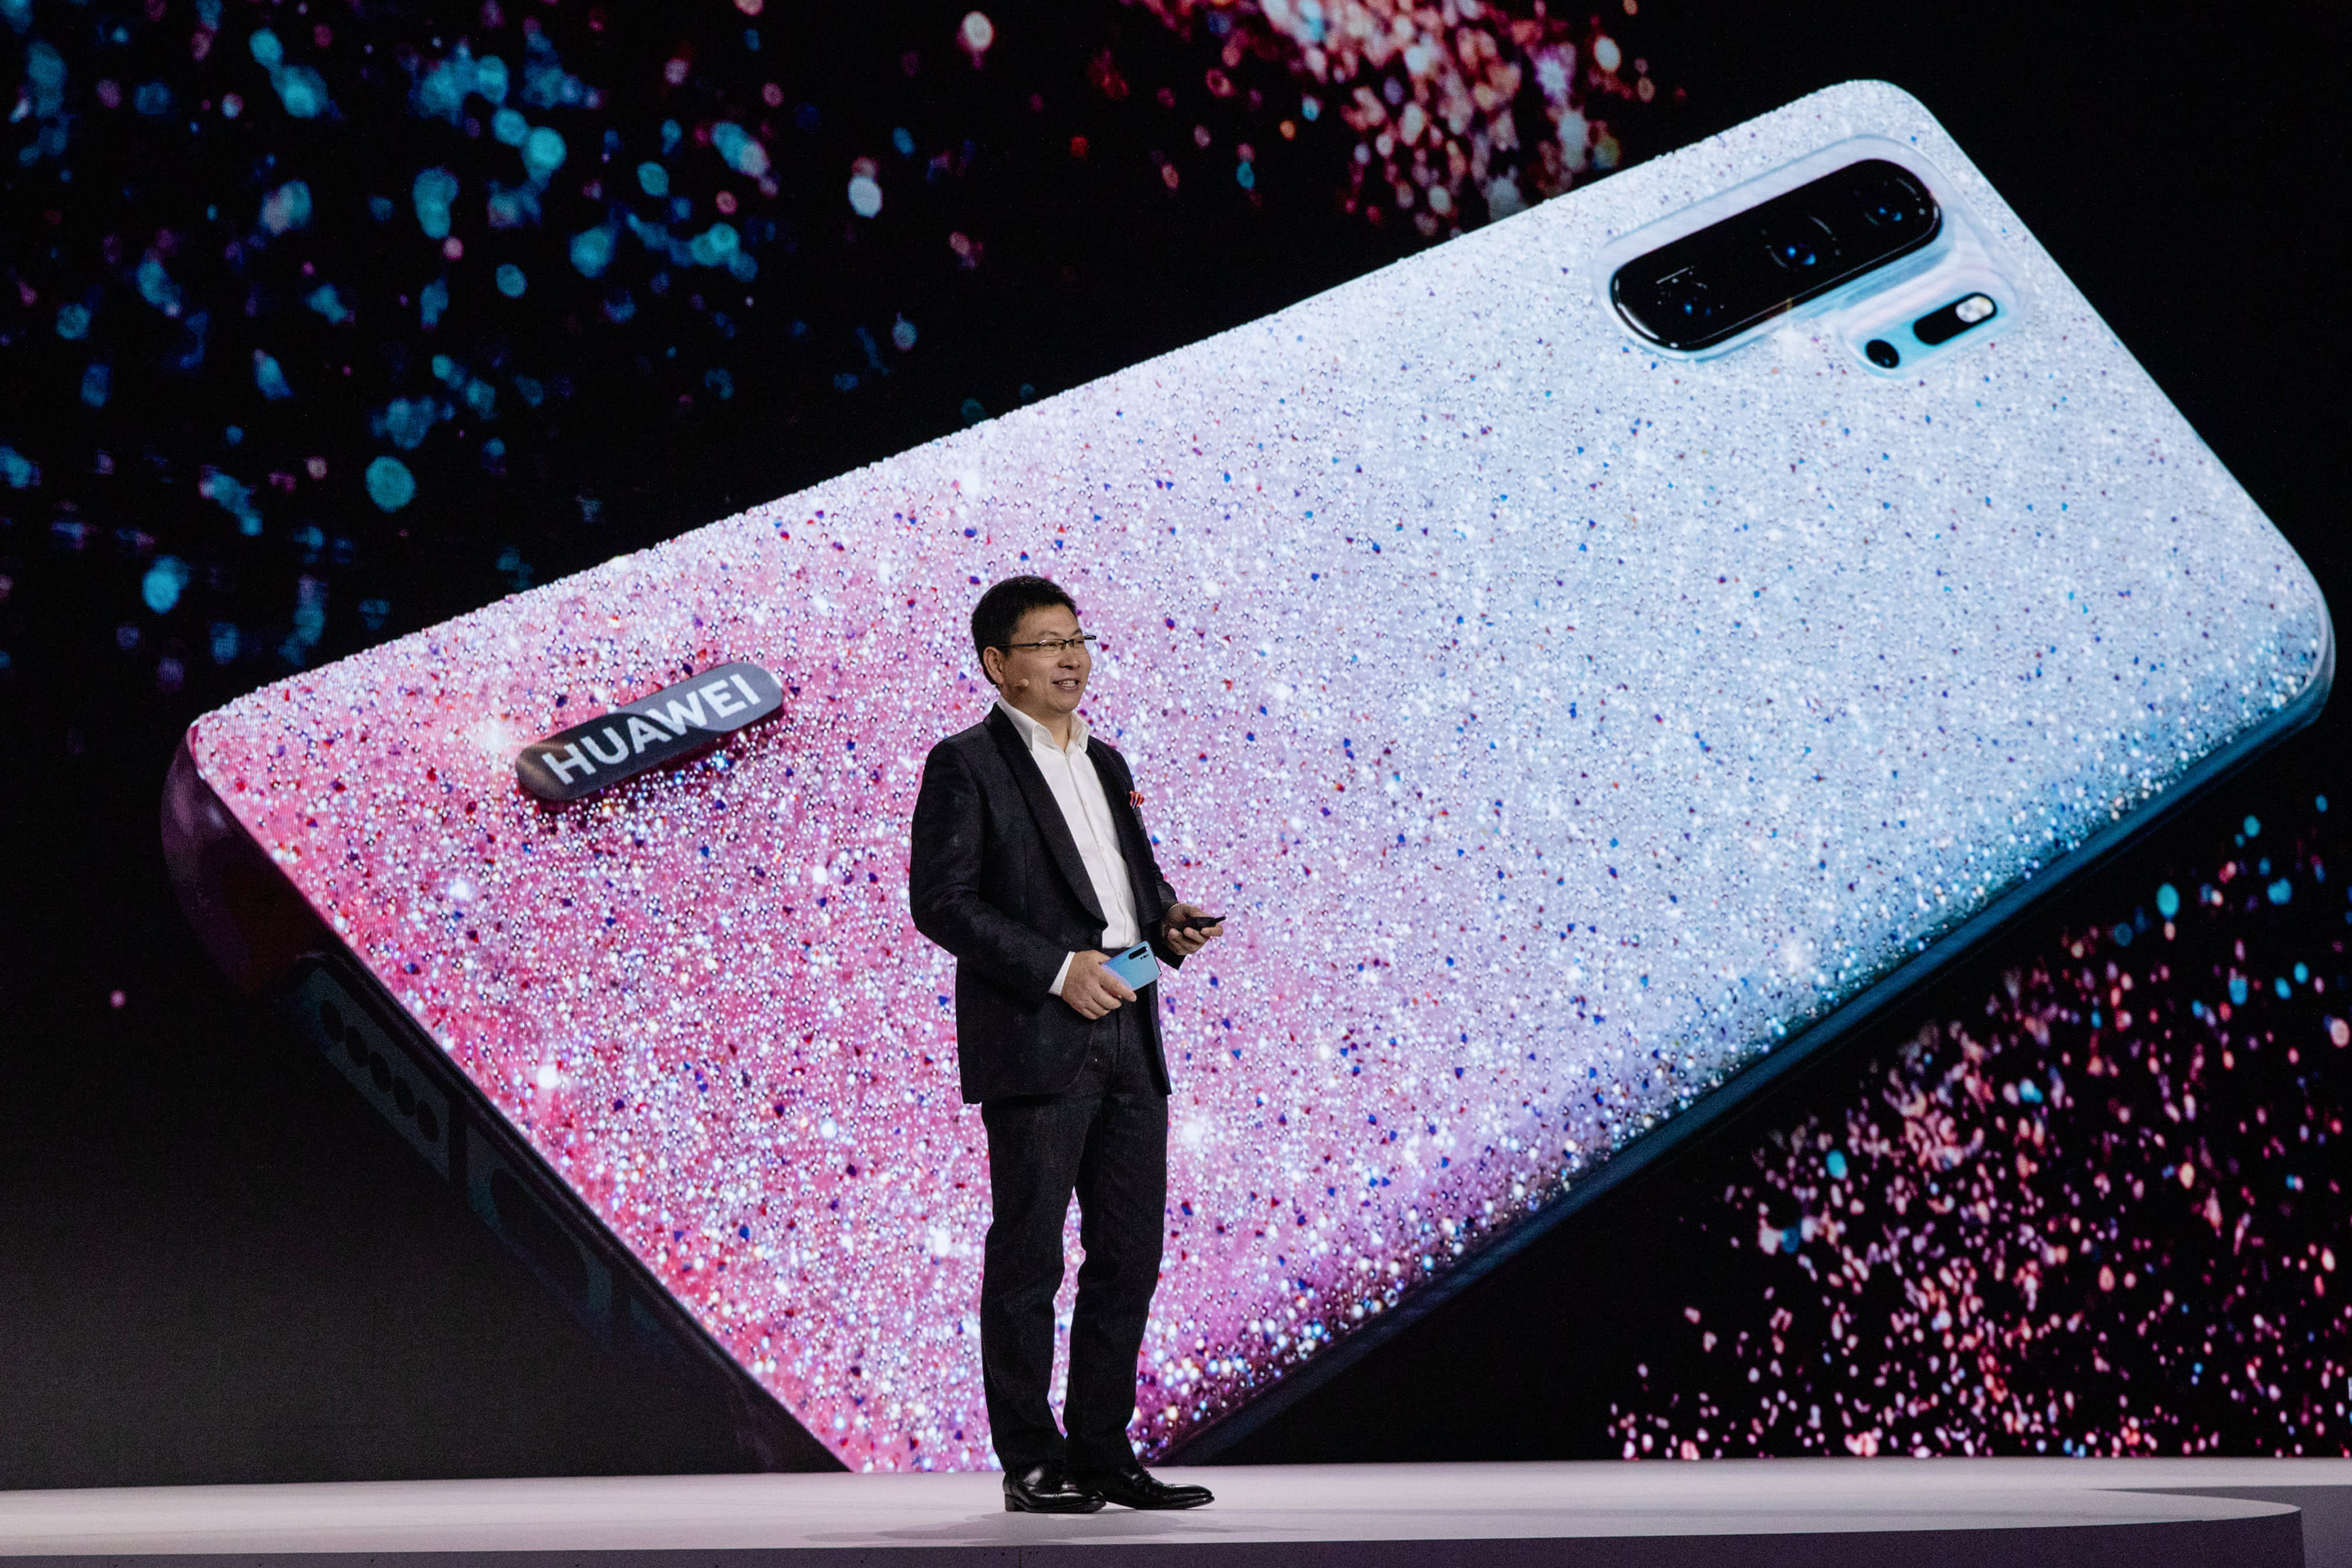 Tablets And Smartphones May Affect >> Google Stops Some Business With Huawei May Hit Smartphones Business